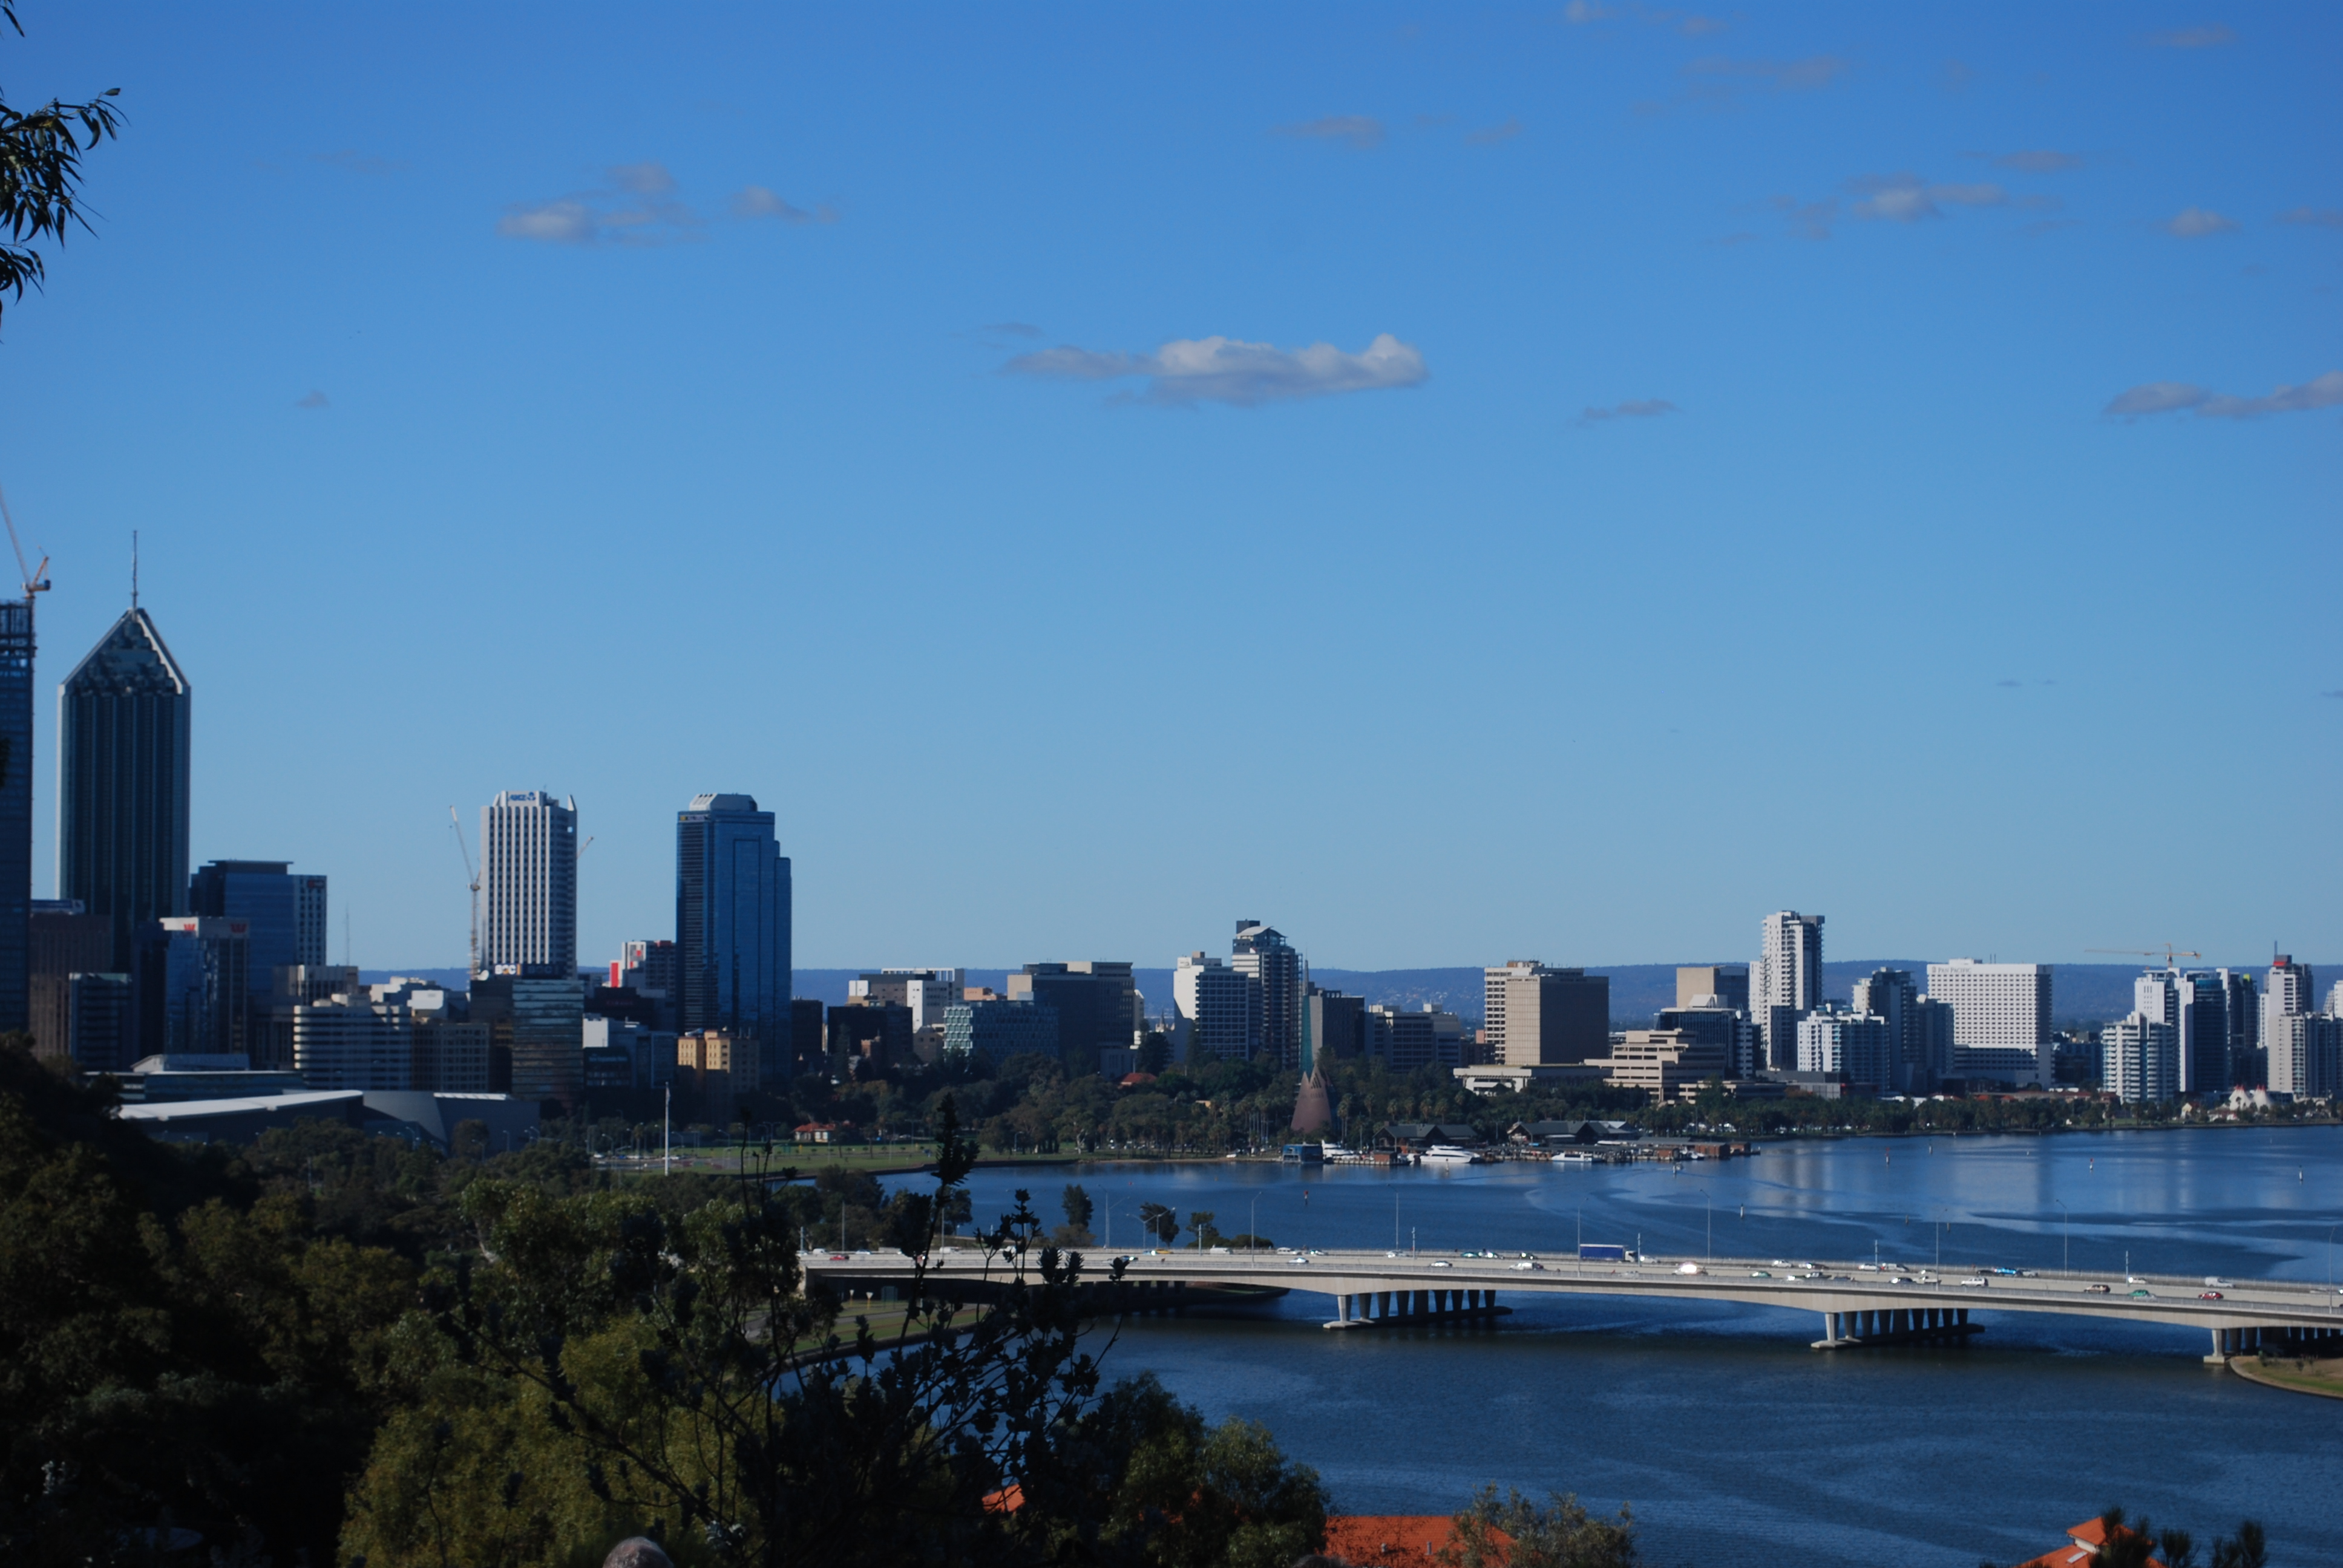 Perth from the harbor